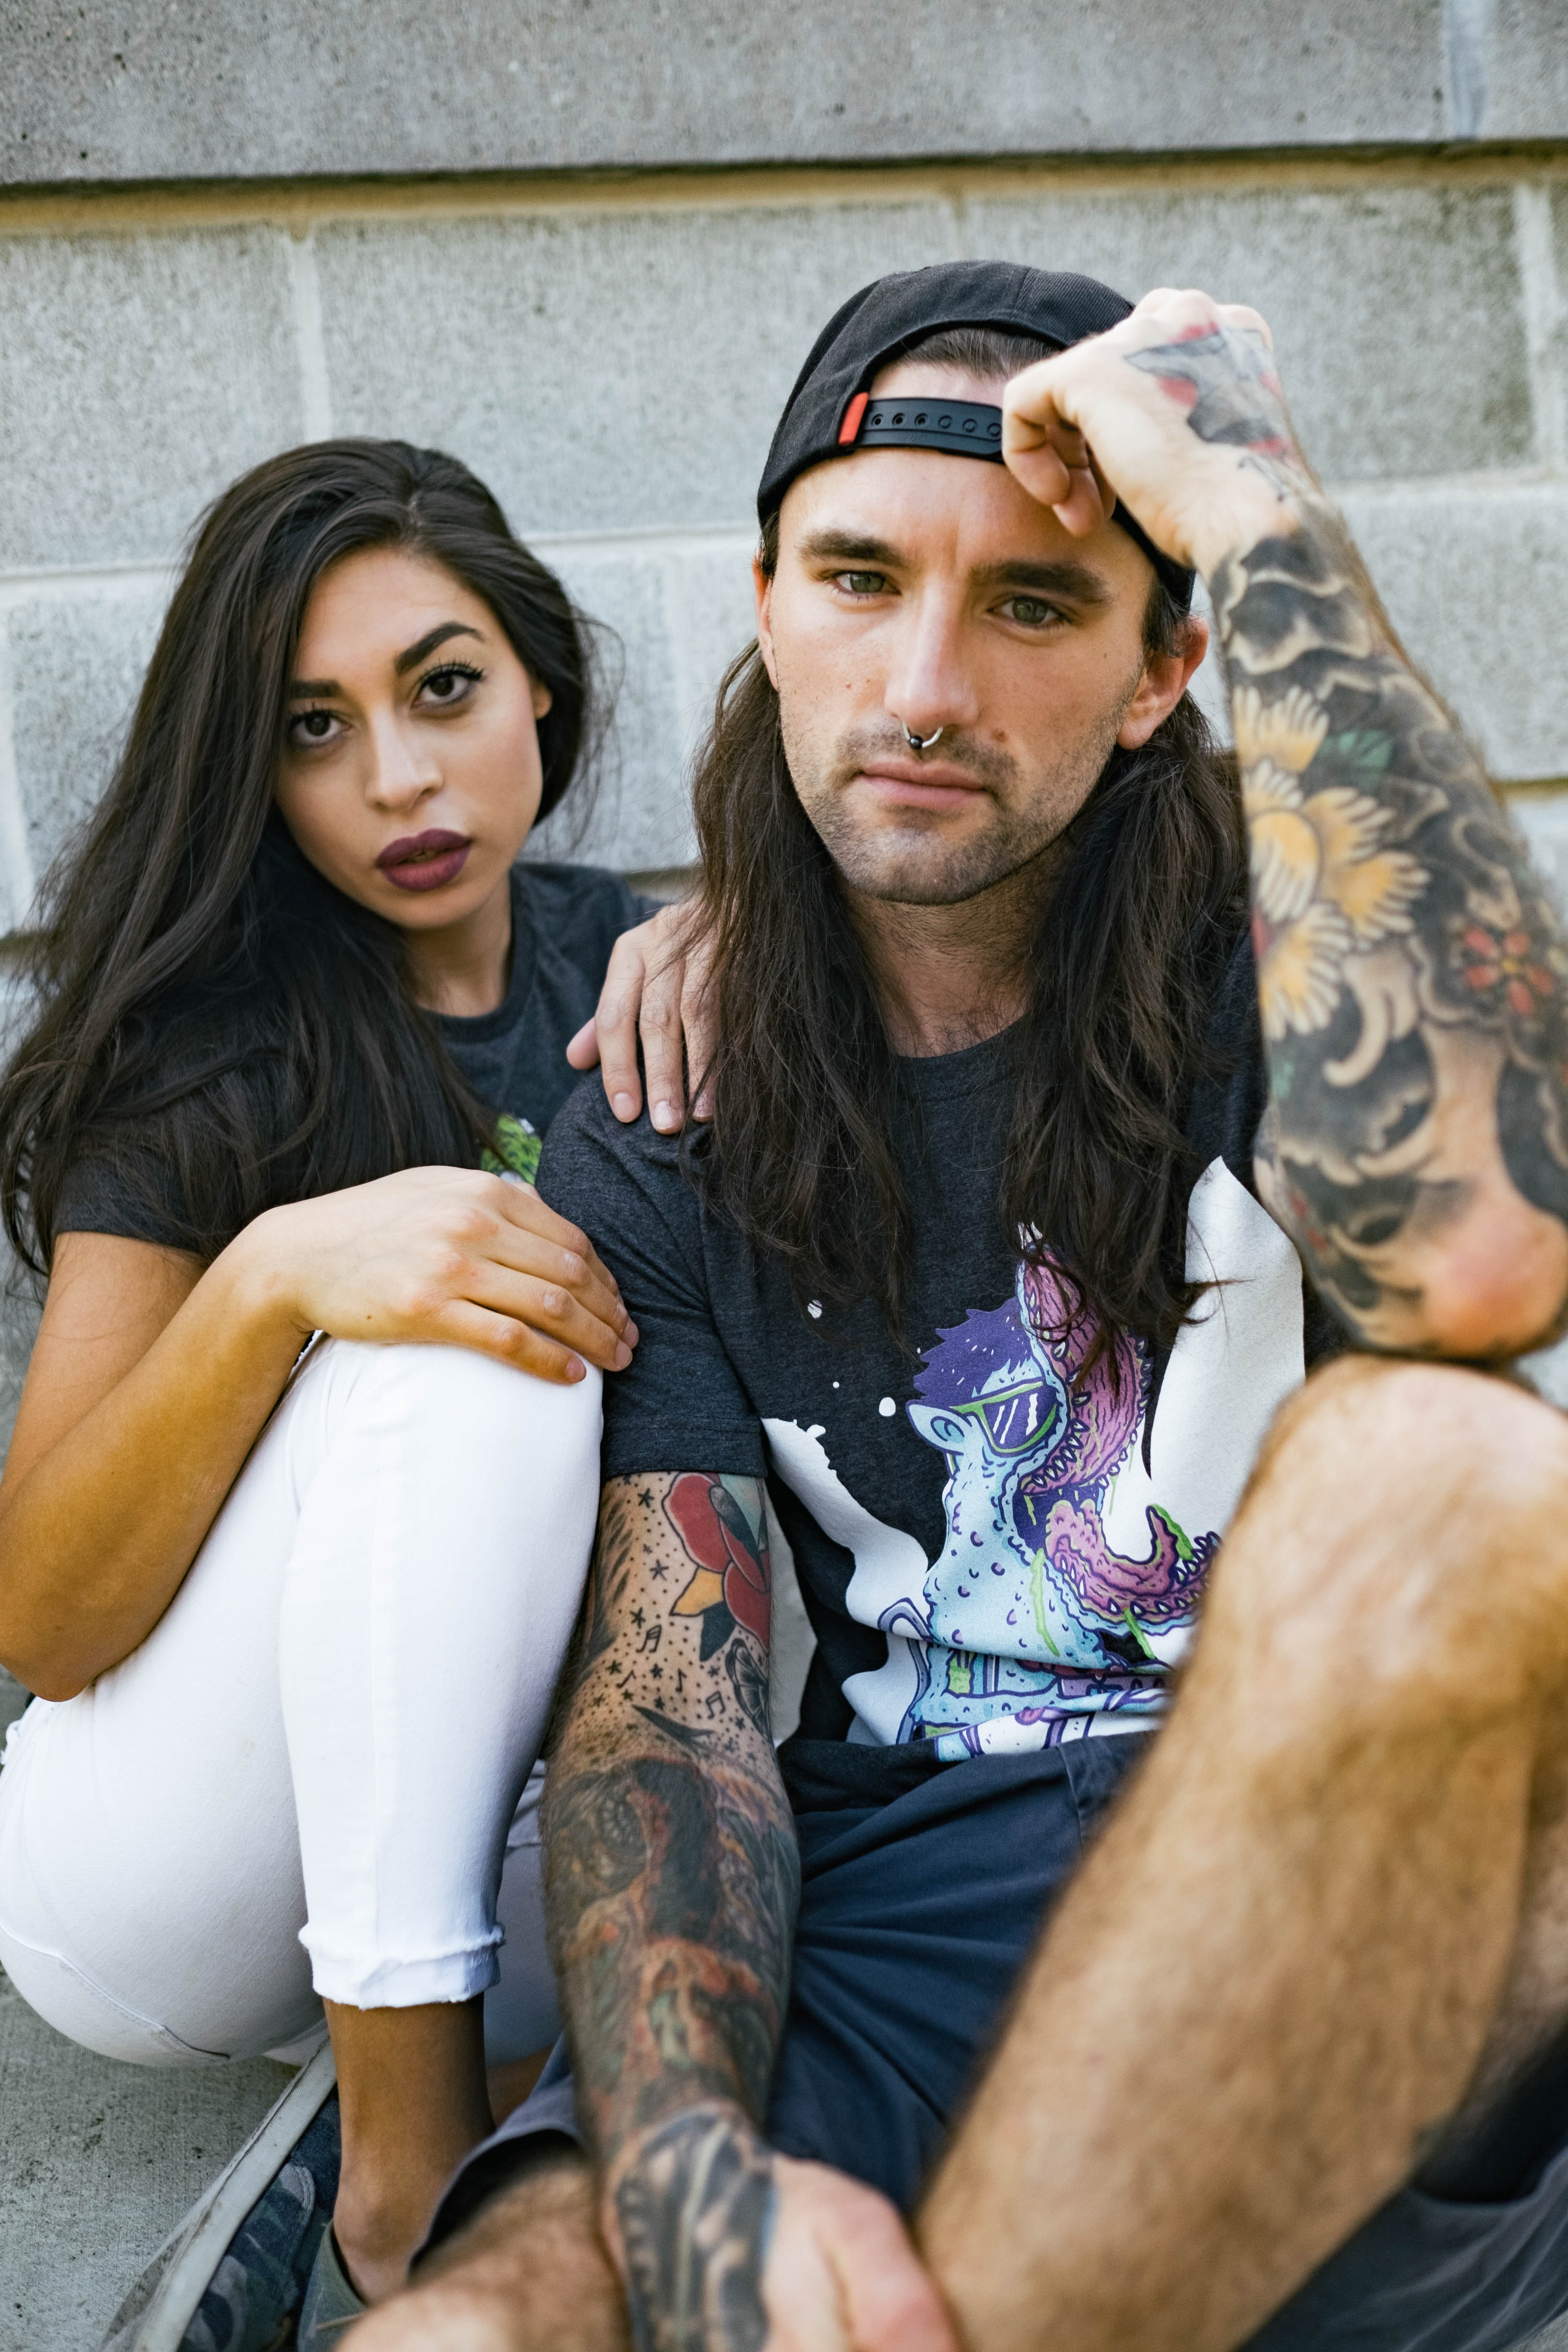 man and woman sitting against concrete wall